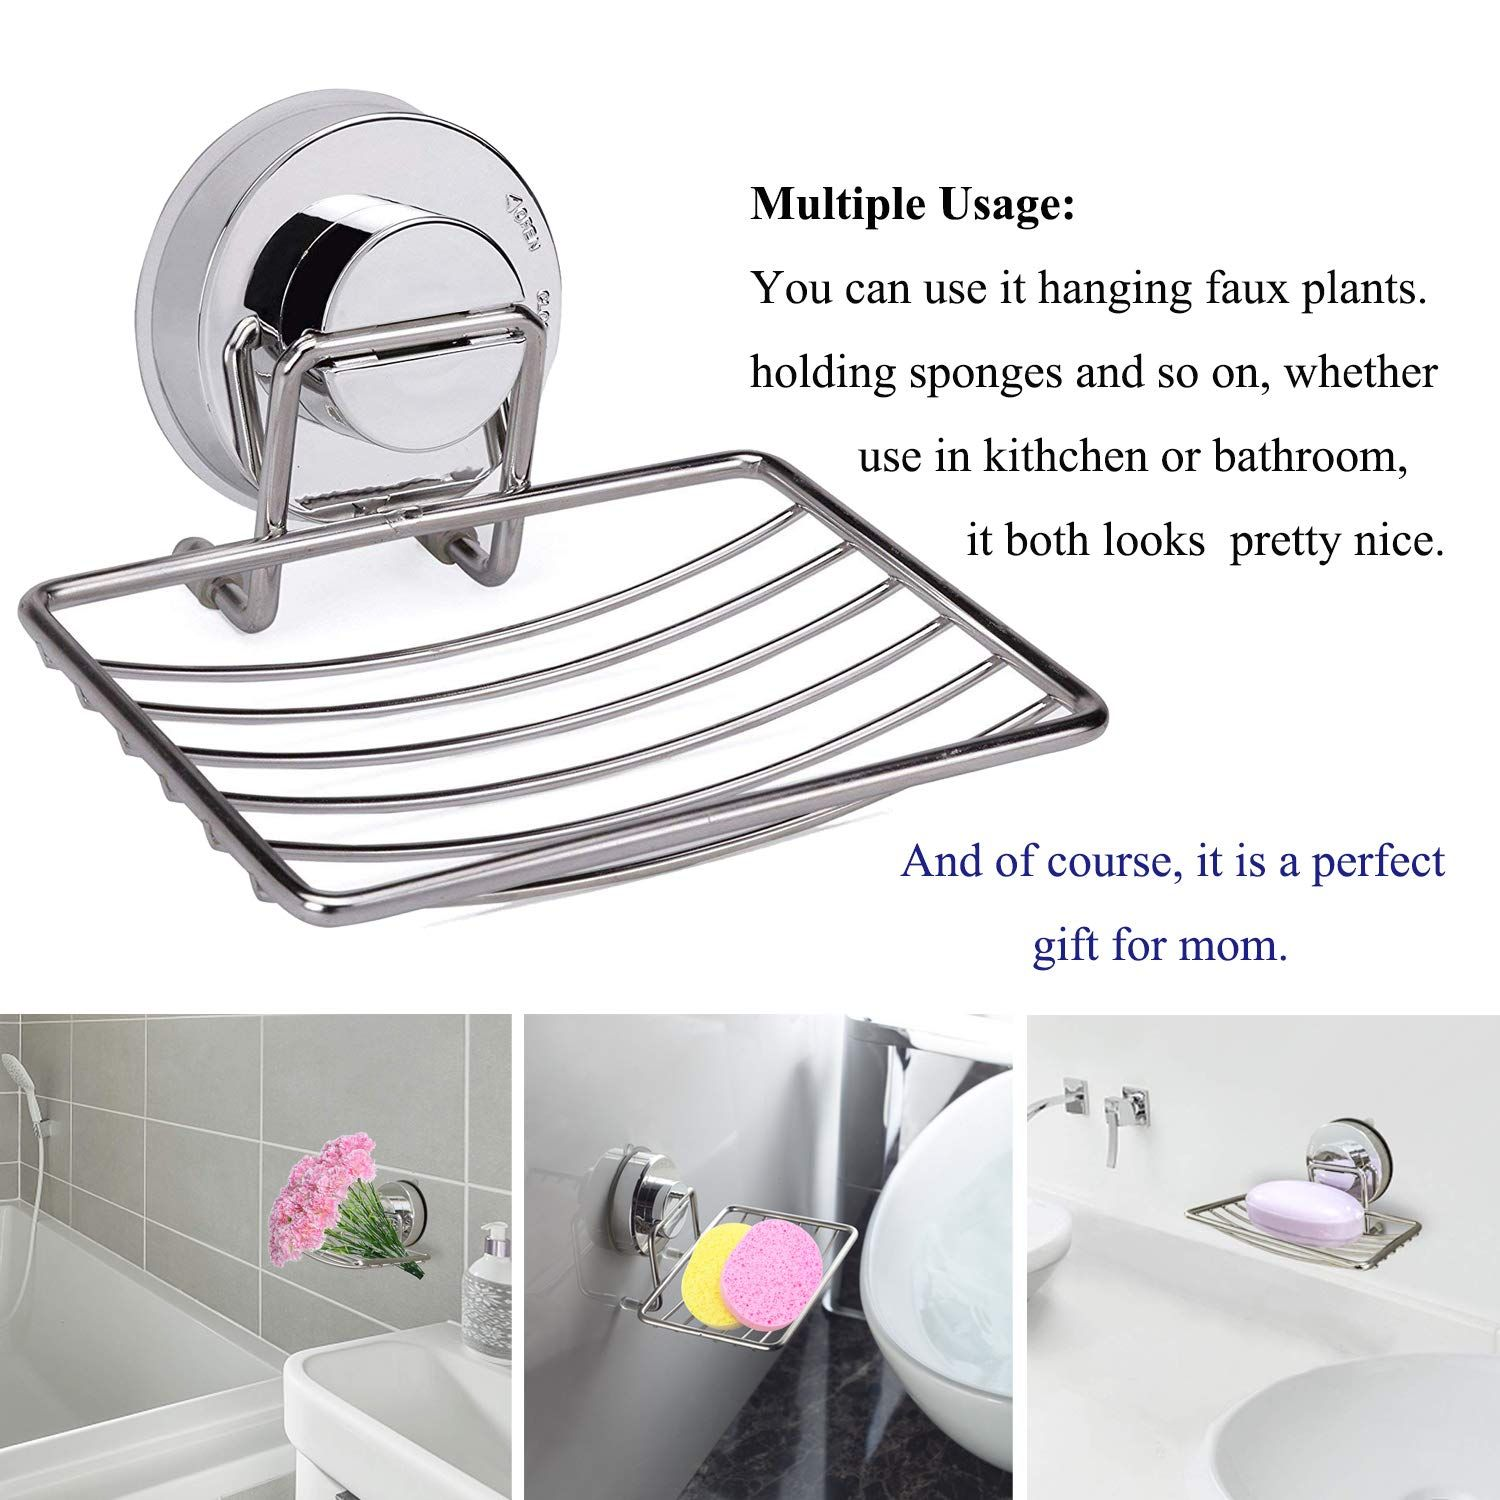 Soap Dish Holder Stainless Steel Soap Basket With Strong Suction Cup Holder For Bathroom Shower Kitchen Sinks 2 Packs In 2020 Suction Cup Holder Bathroom Cups Bathroom